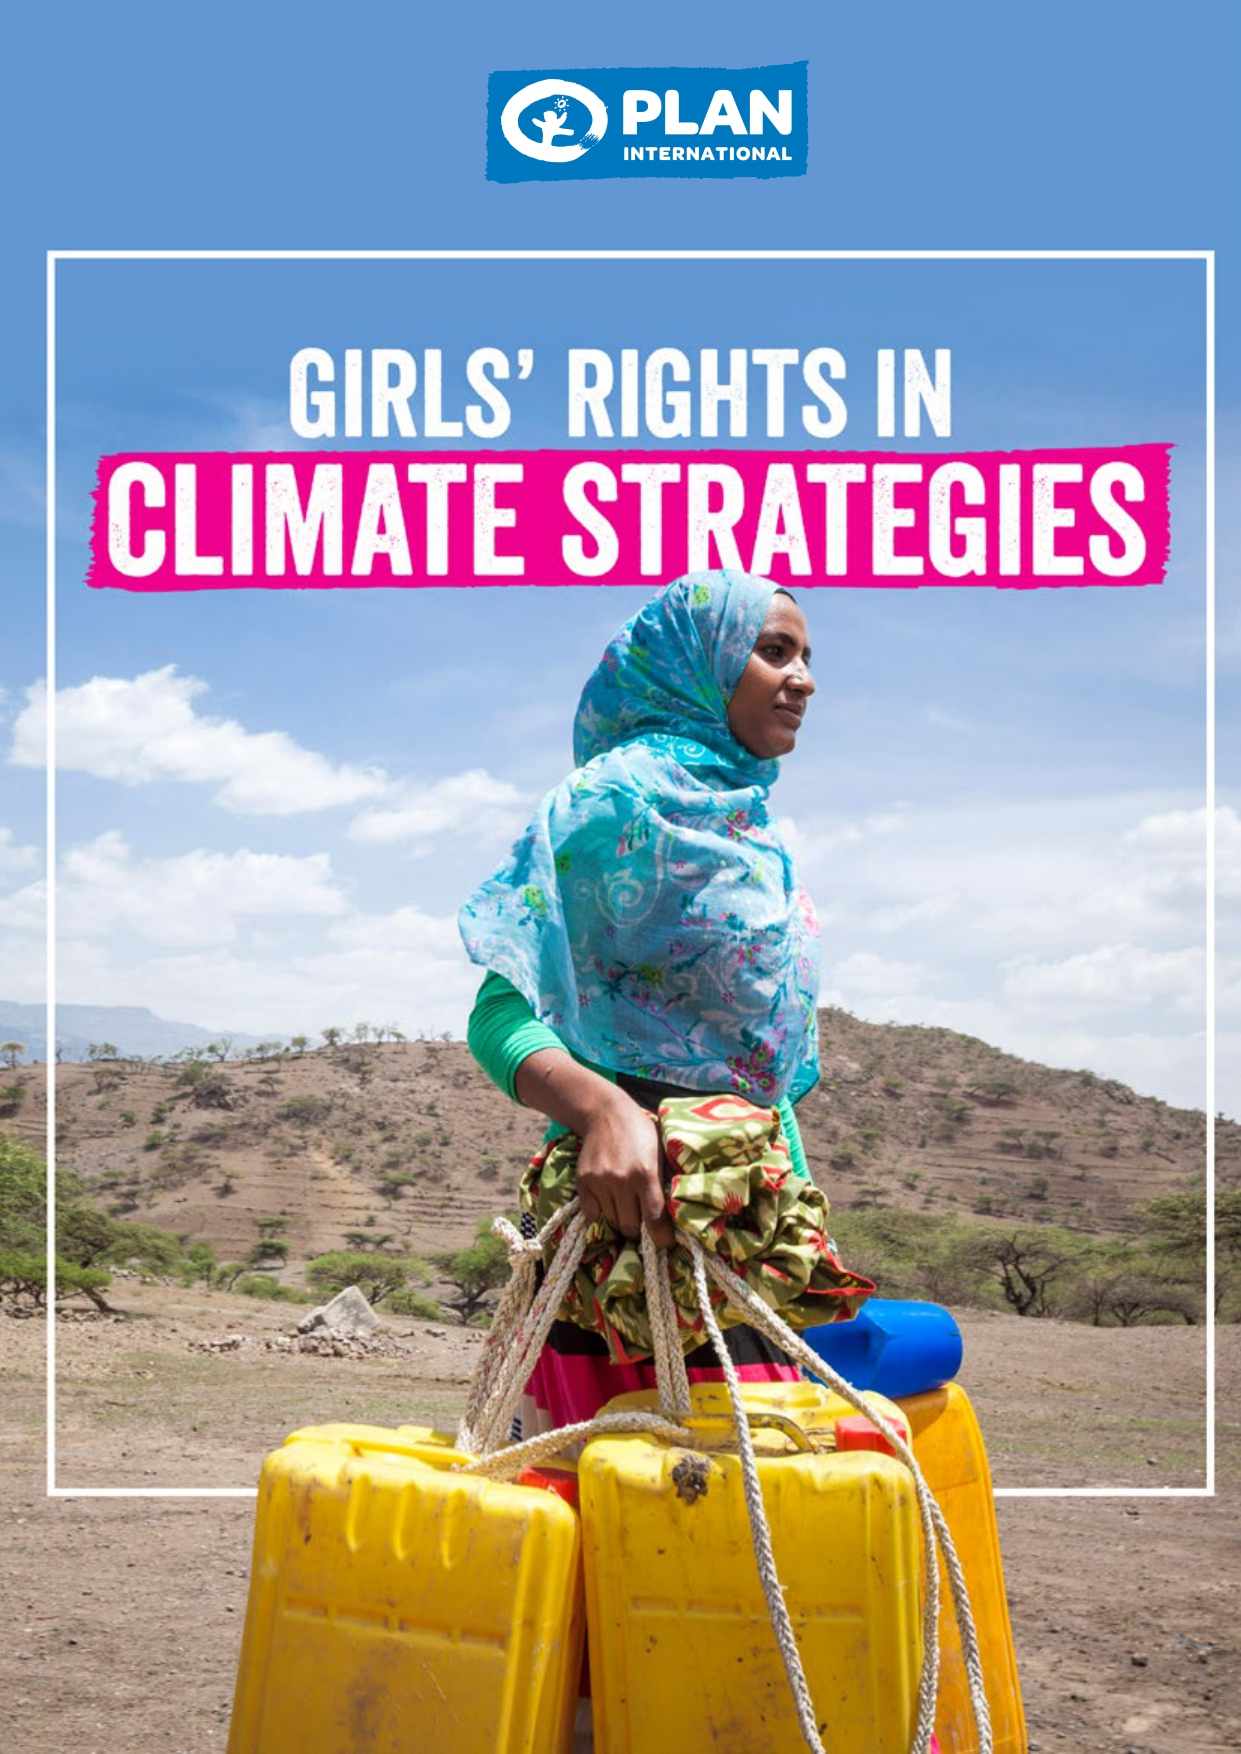 Girls' Rights in Climate Strategies